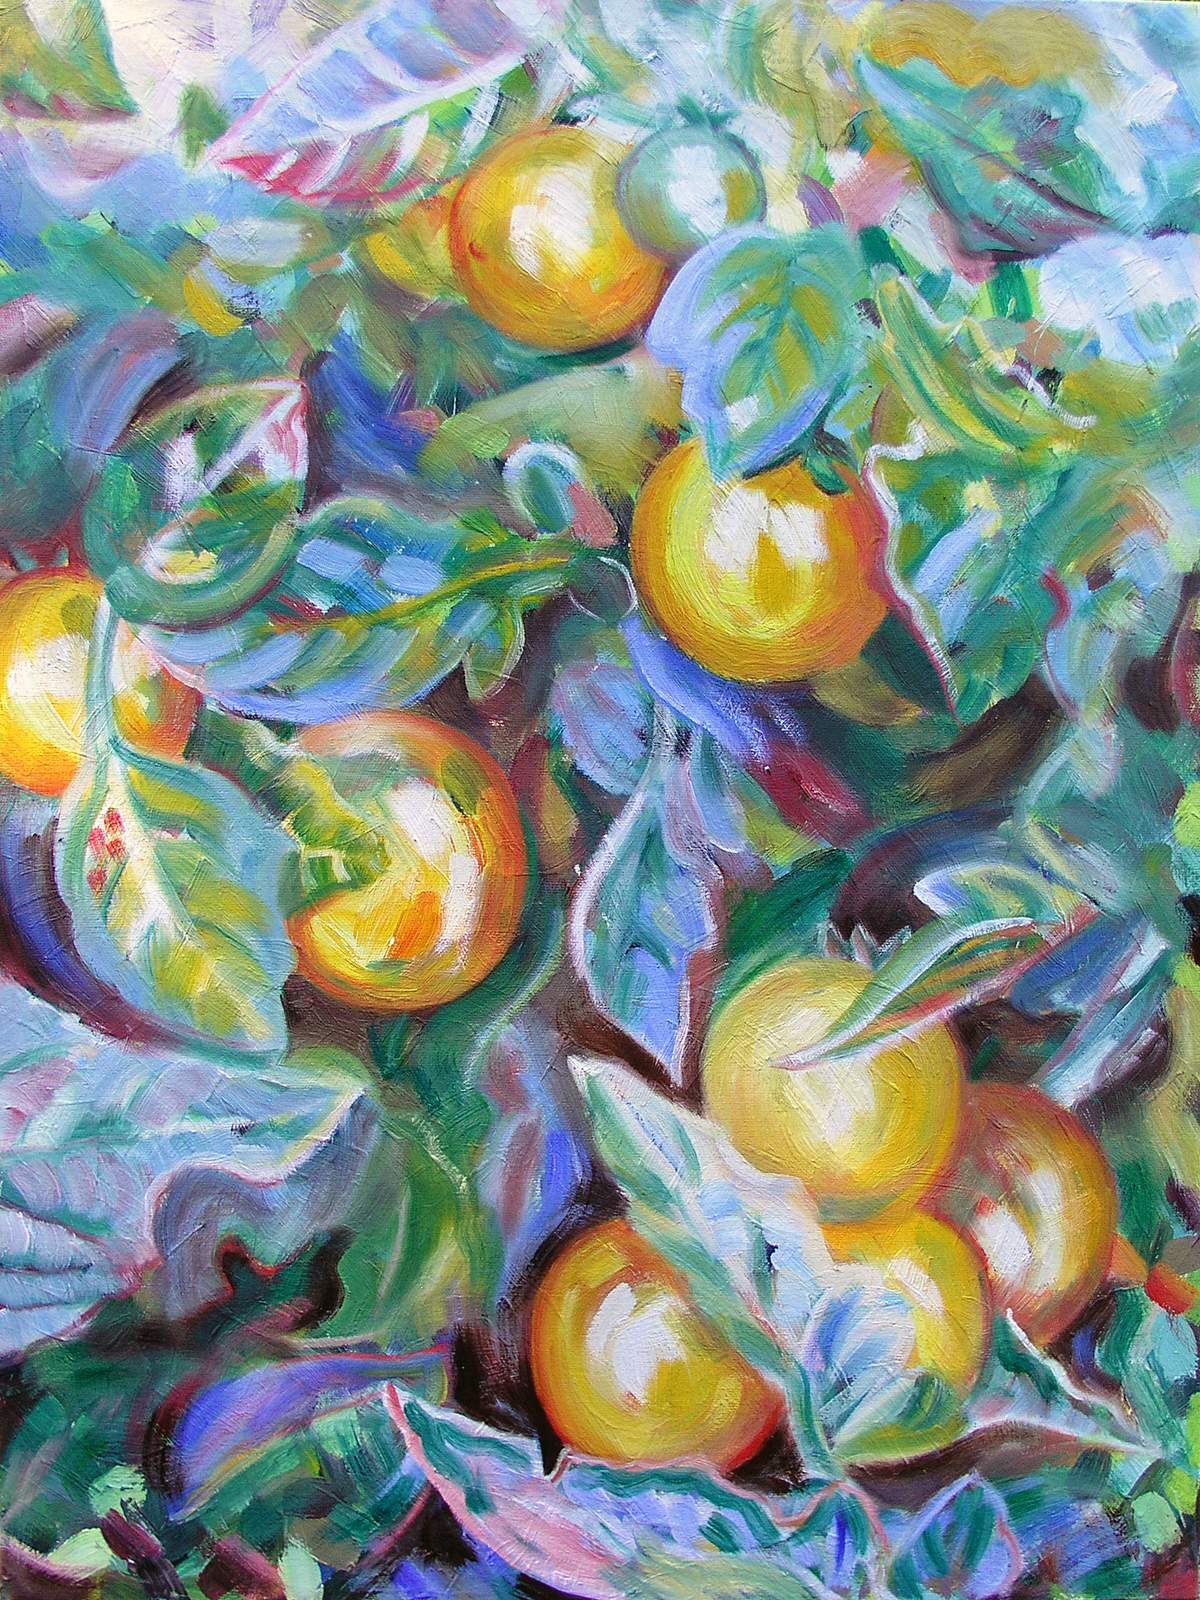 "Lycopersicum esculentum, 'Golden Nuggets', 2016 Marion-Lea Jamieson Oil on canvas 24"" h x 18"" w"